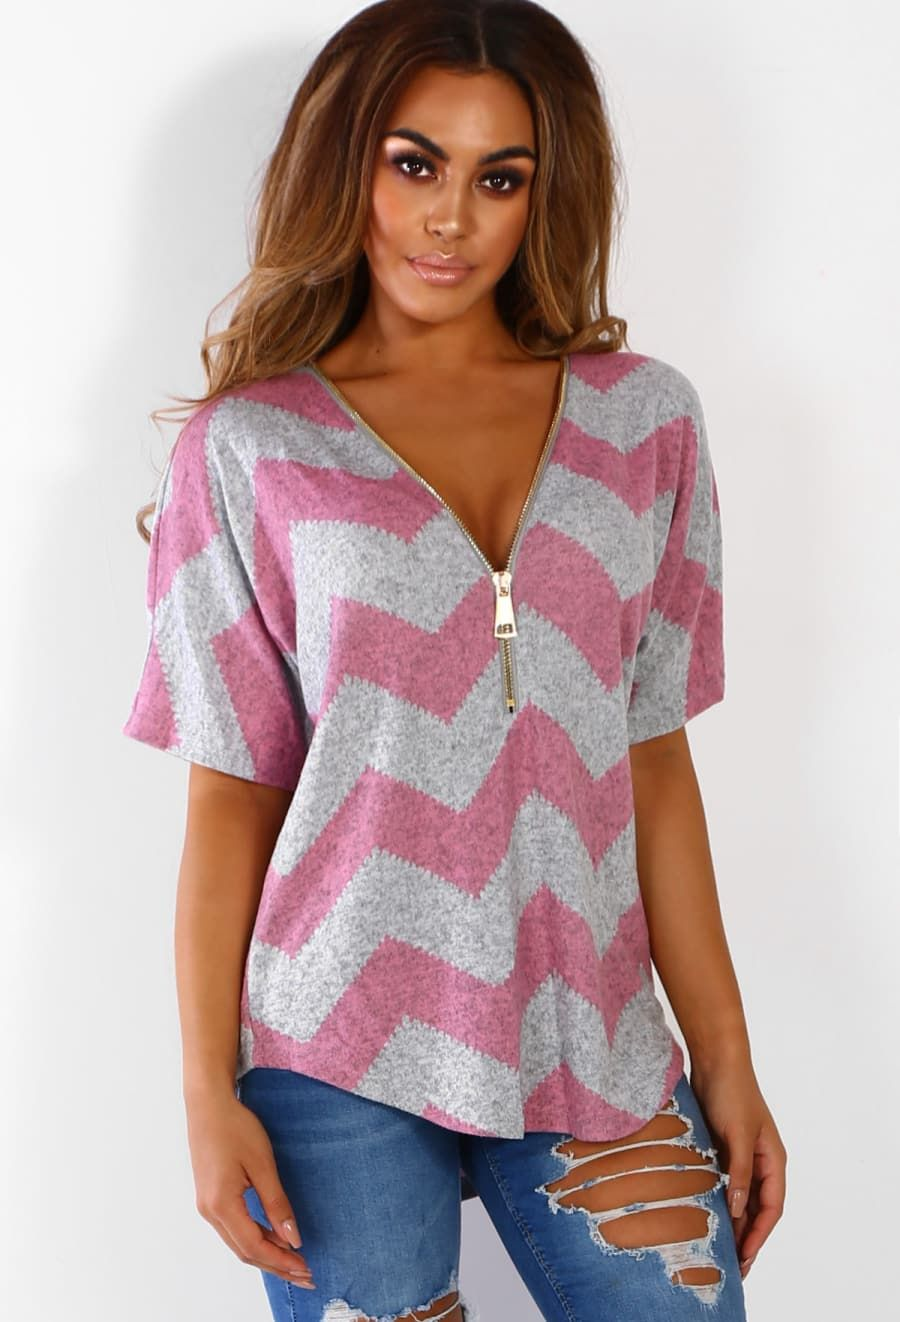 d9c6f66187a Soul Mate Pink And Grey Chevron Zip Front Top